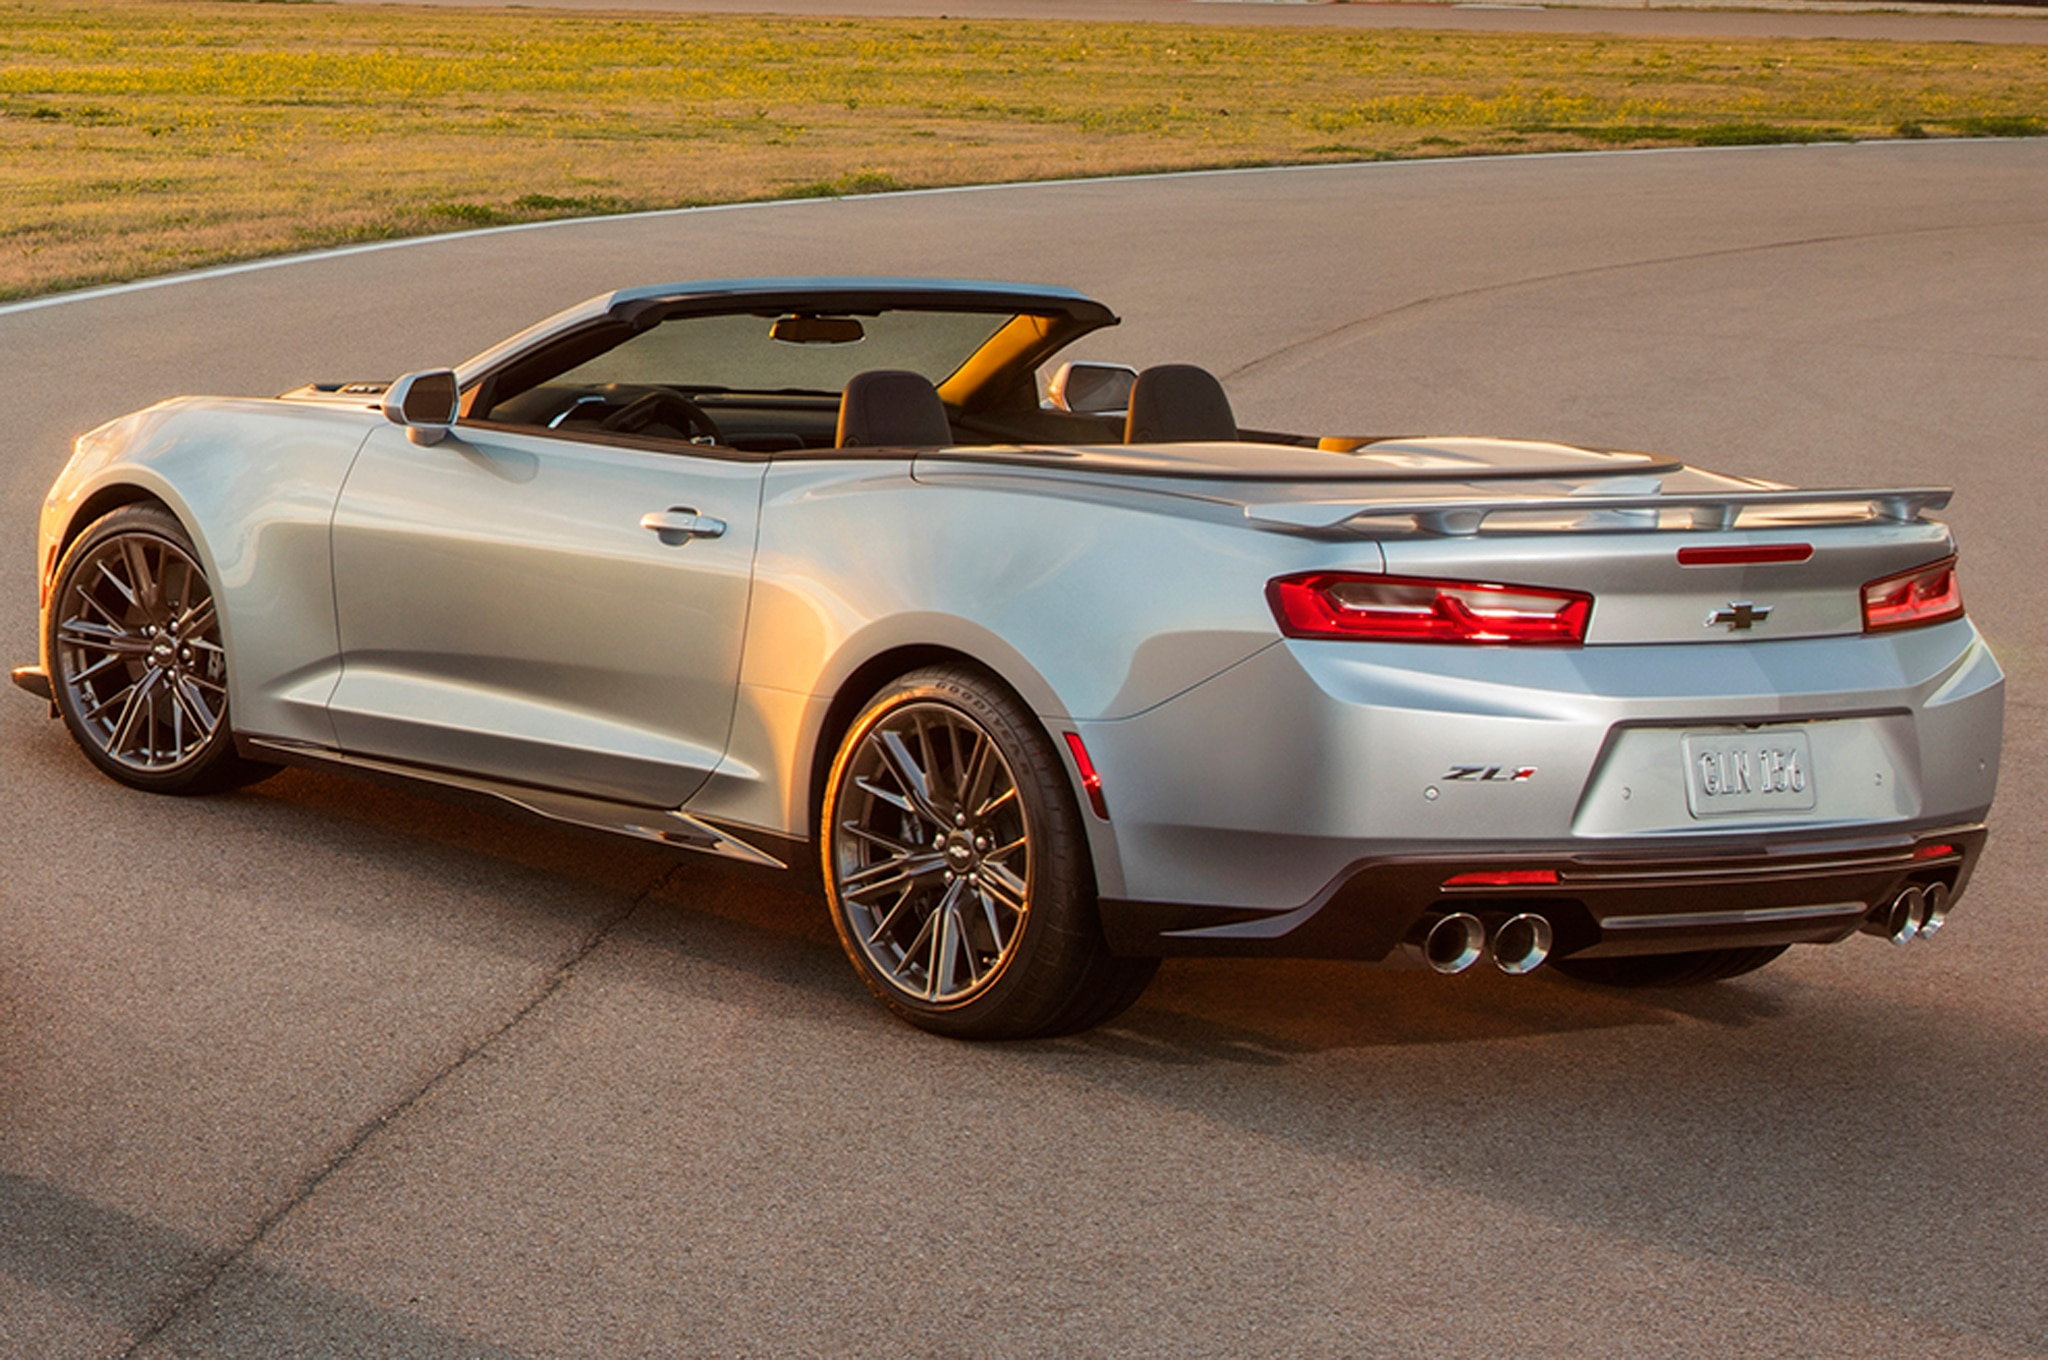 2017 Chevrolet Camaro ZL1 Convertible rear side view on track